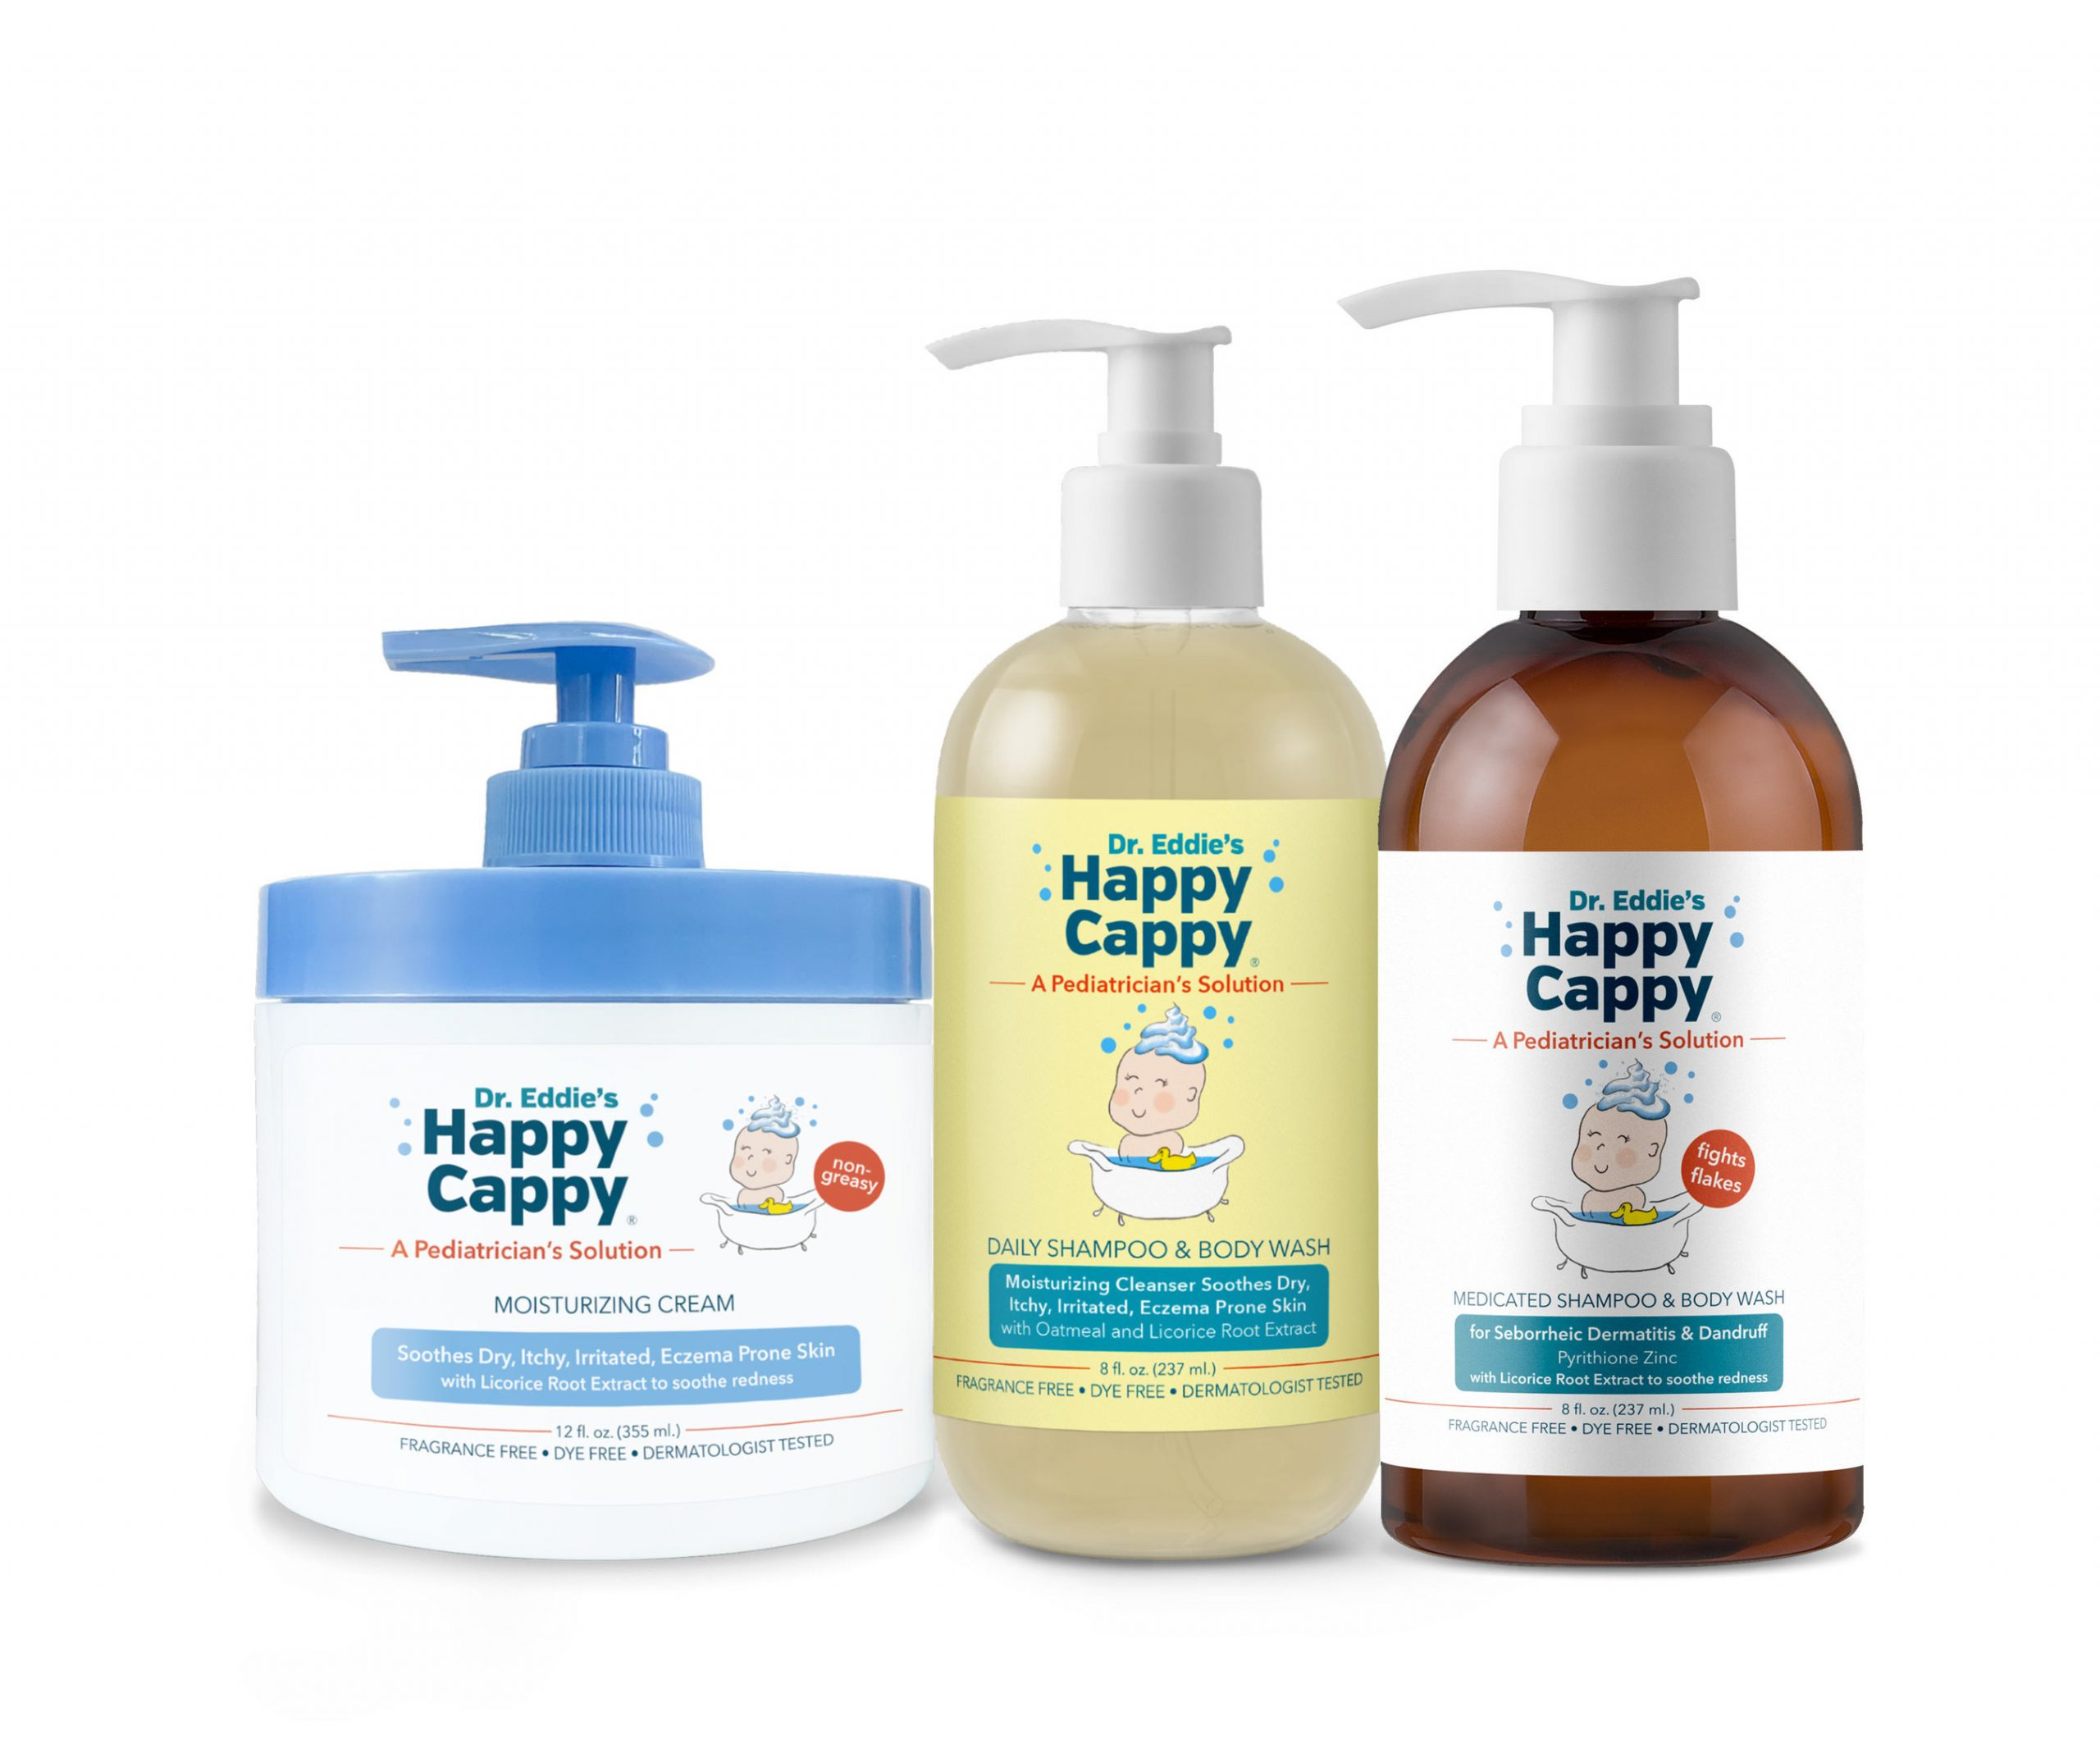 Dr. Eddie's Happy Cappy® Eczema Cream and Daily Shampoo Now Available at Walgreens Stores Nationwide